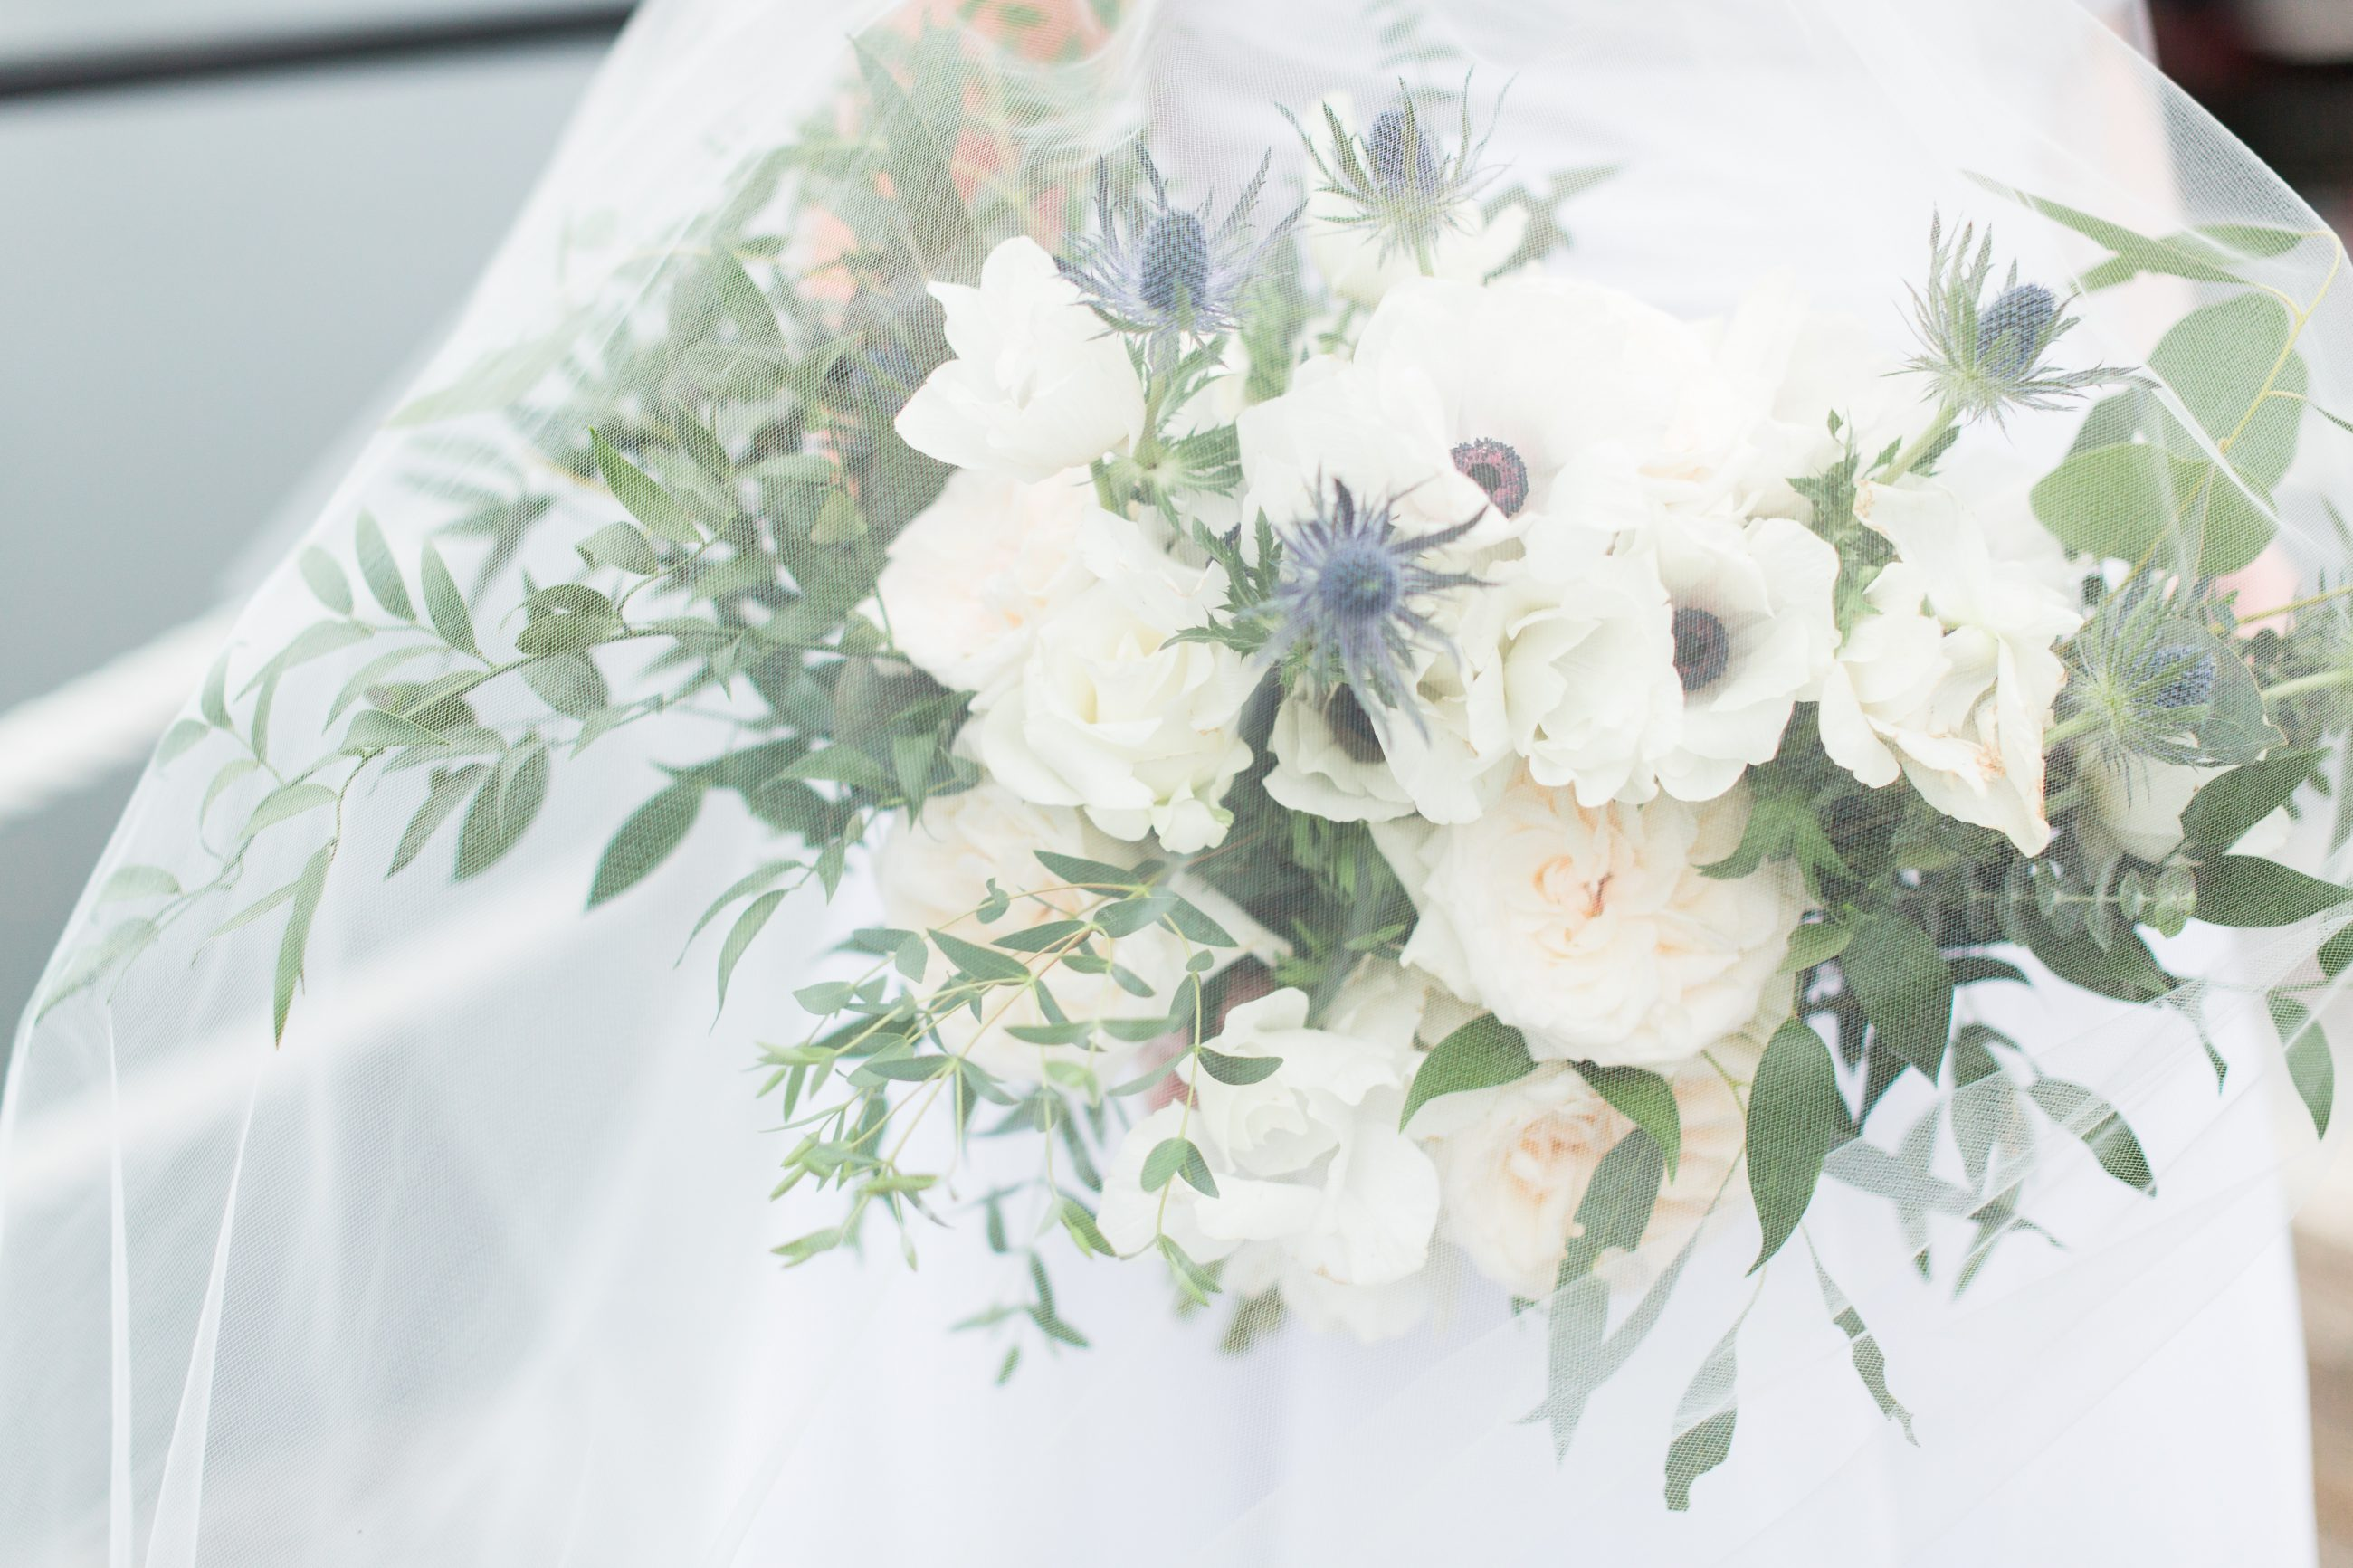 Bridal bouquet simple white flowers with greenery in a hand tied design by Magnificent Moments Weddings